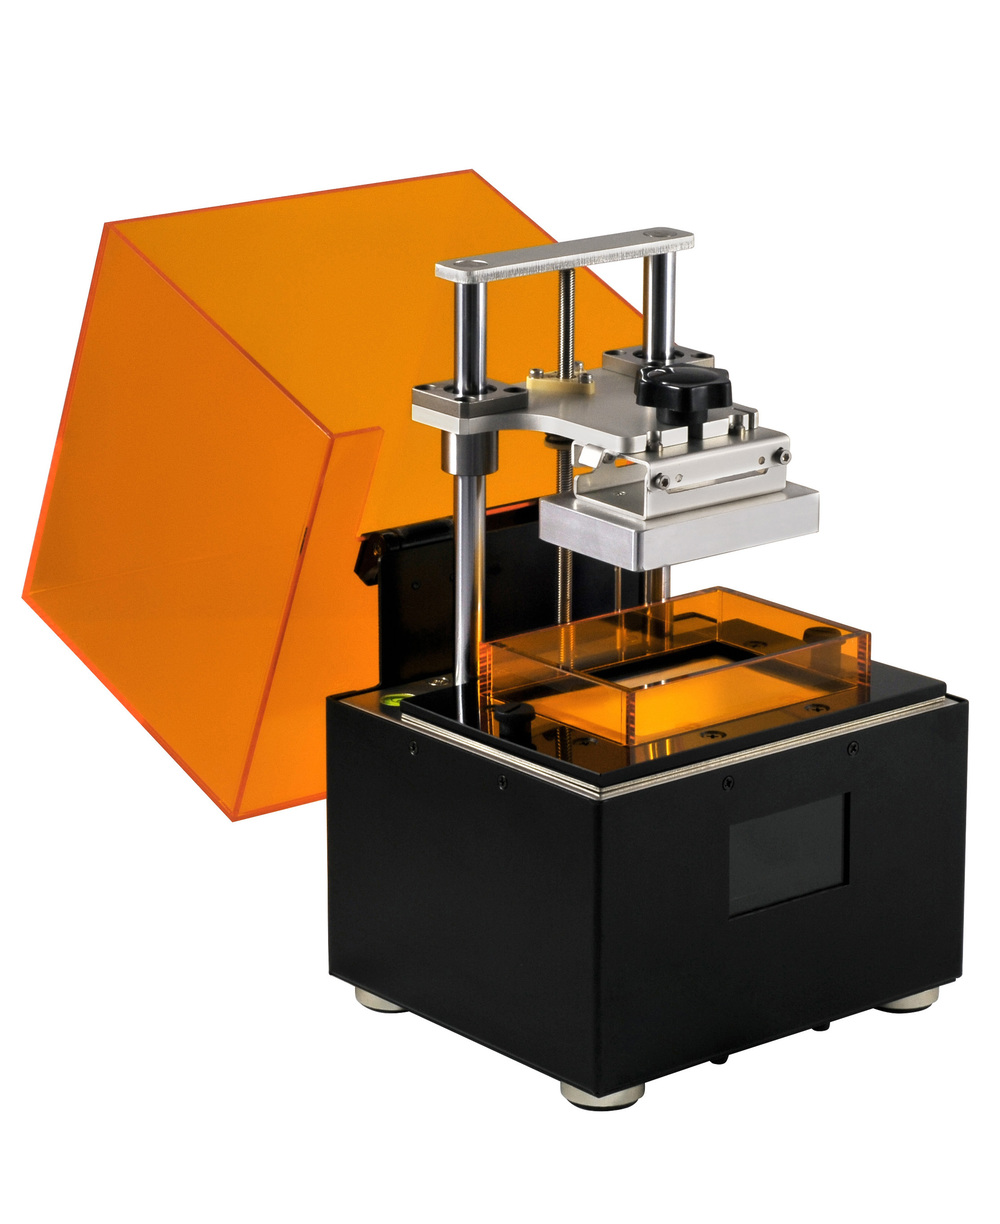 patented resin vat system printer